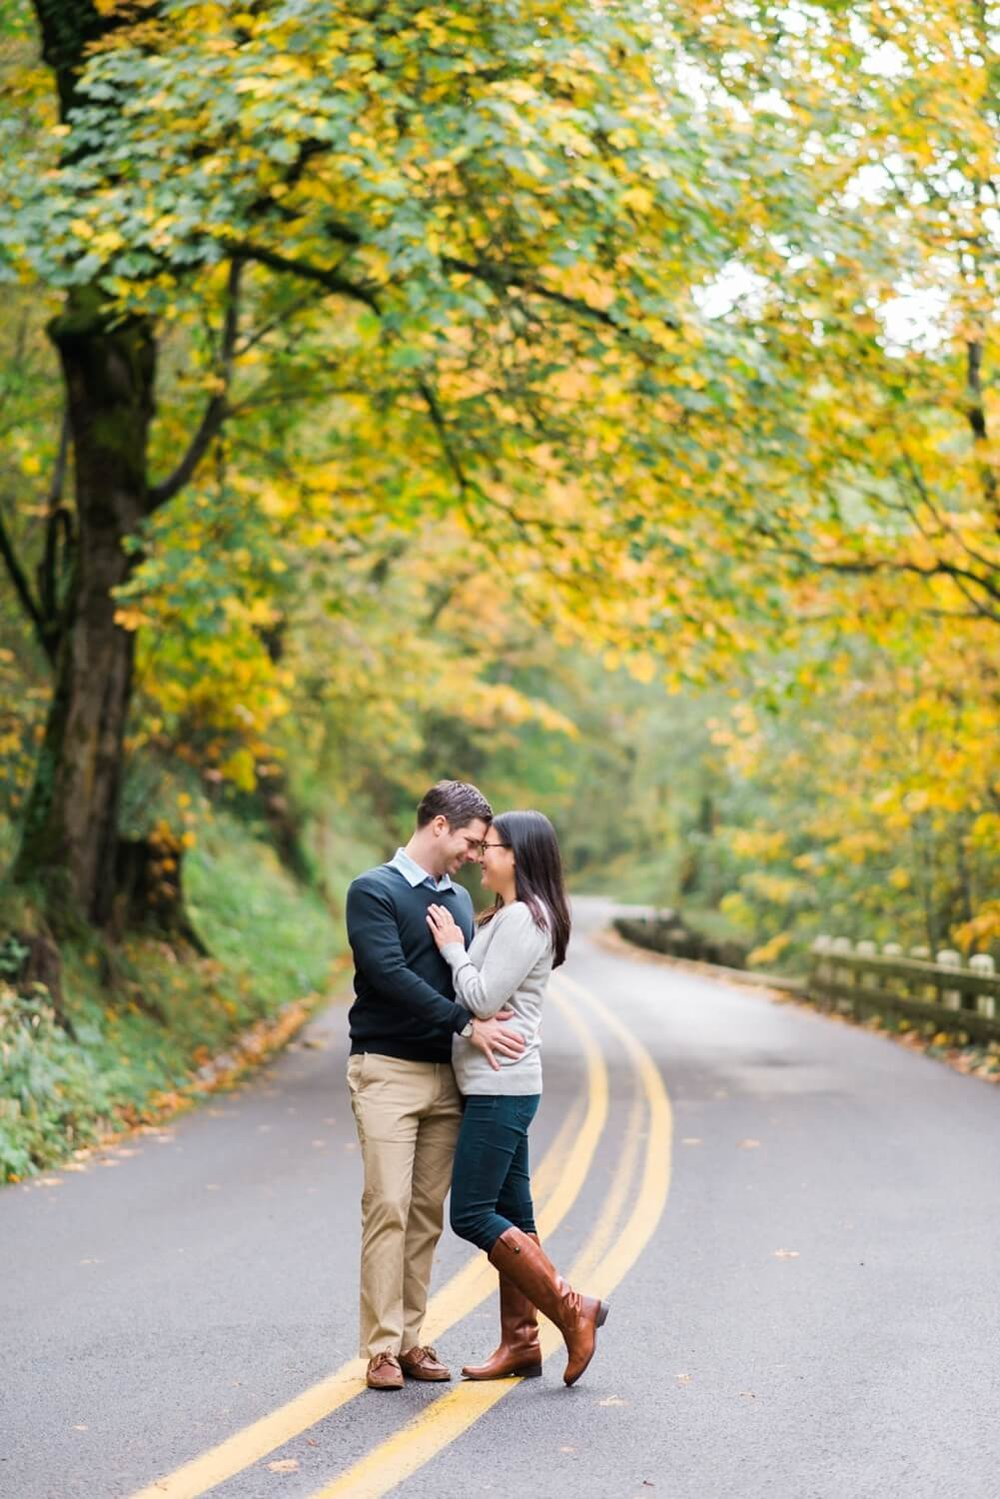 portland-engagement-colubia-river-gorge-latourell-waterfall-autumn-fall-crown-point-shelley-marie-photo-31_cr.jpg